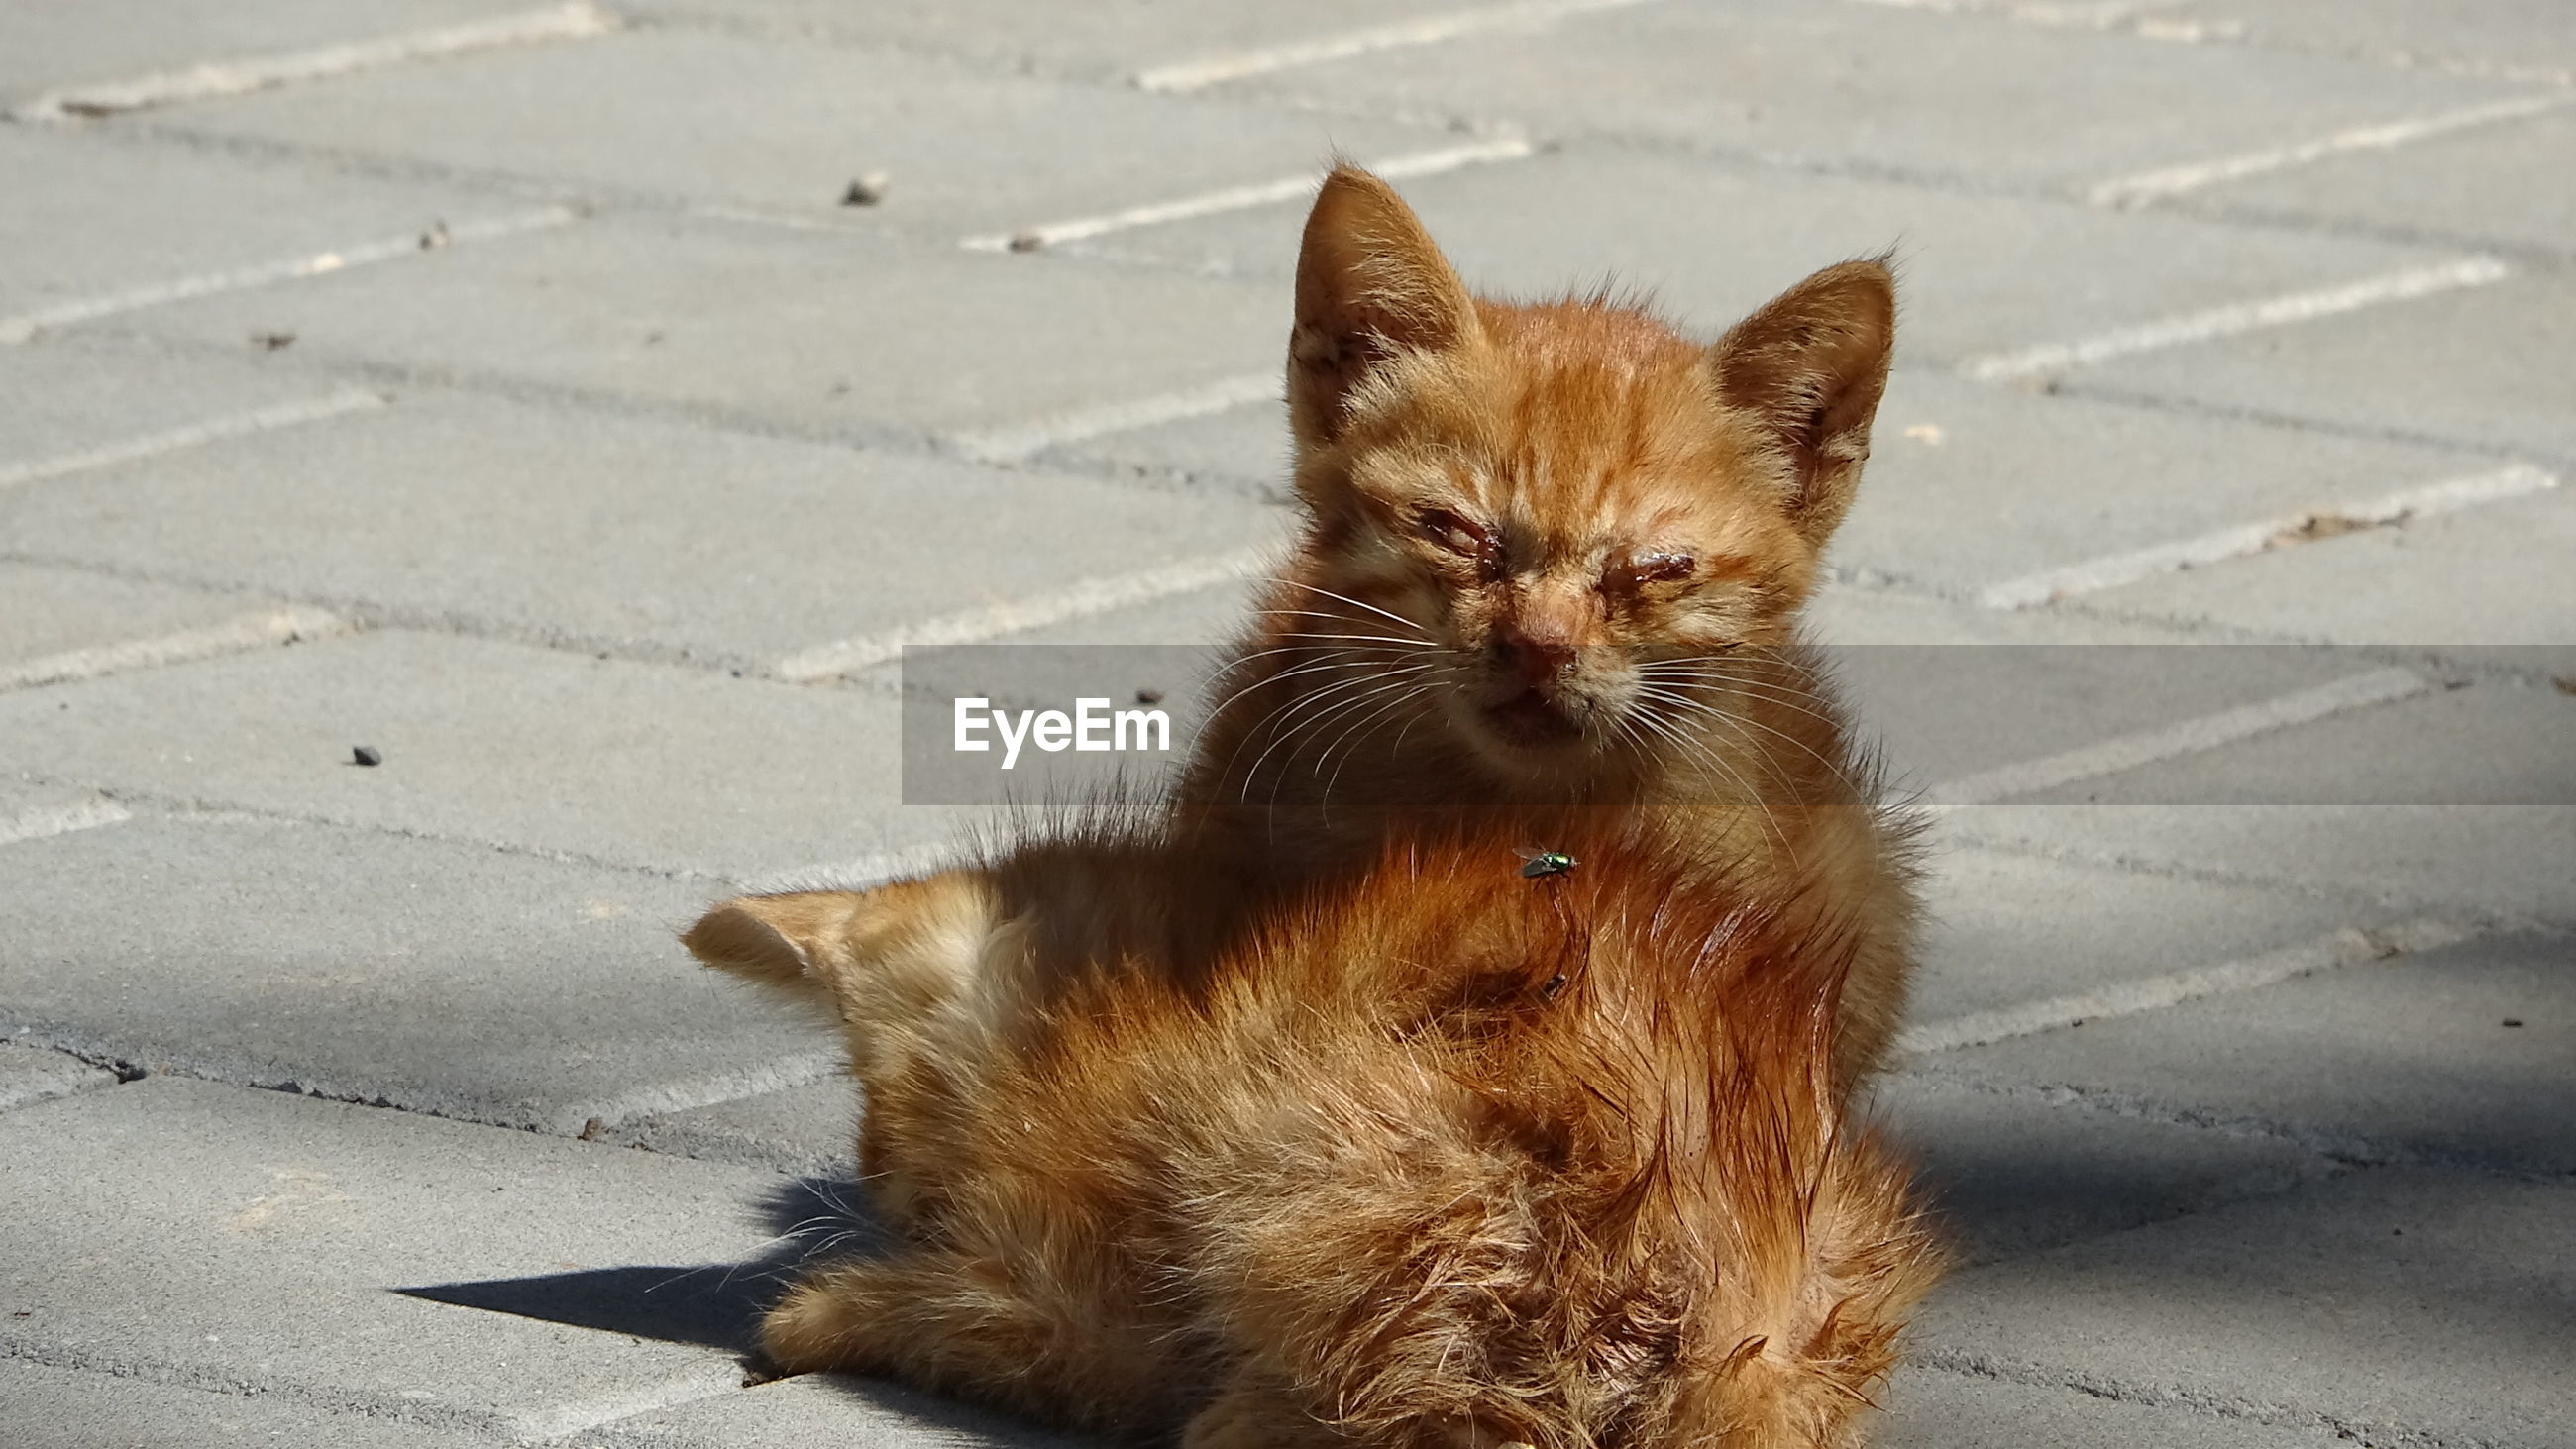 PORTRAIT OF CAT RELAXING ON FOOTPATH BY STREET